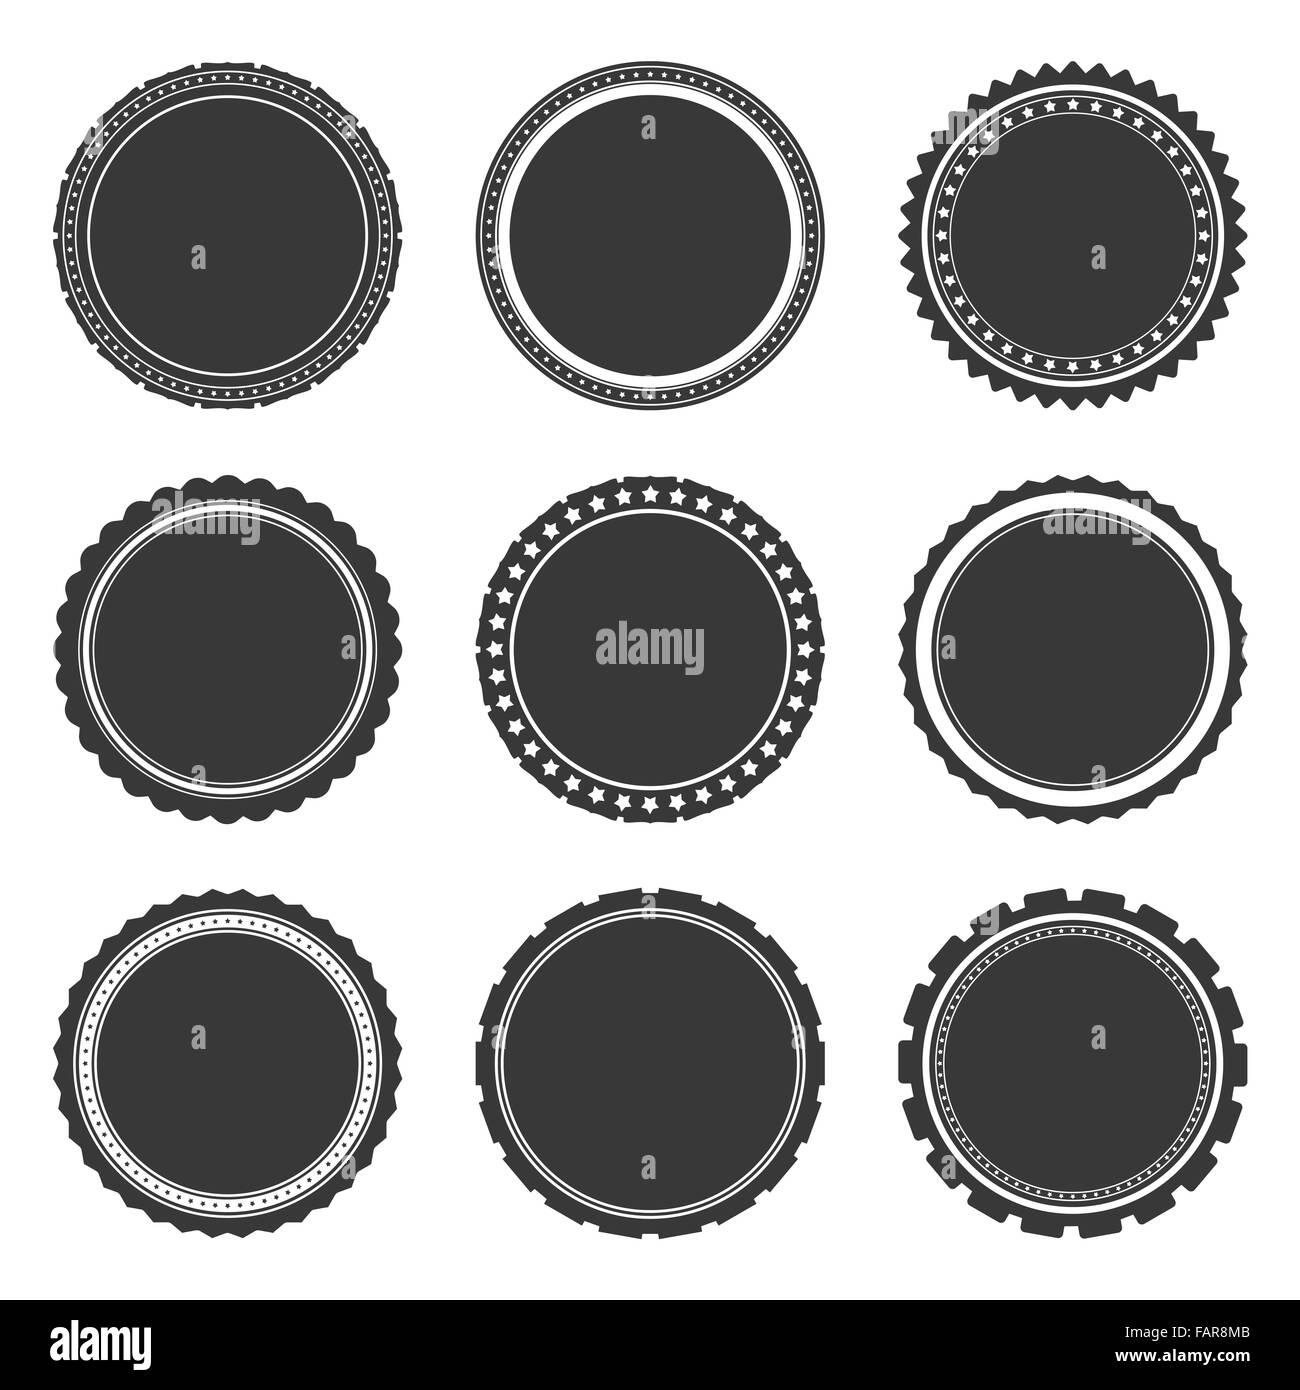 Empty Stamp Label Icon Vector Black and White Stock Photos & Images ...